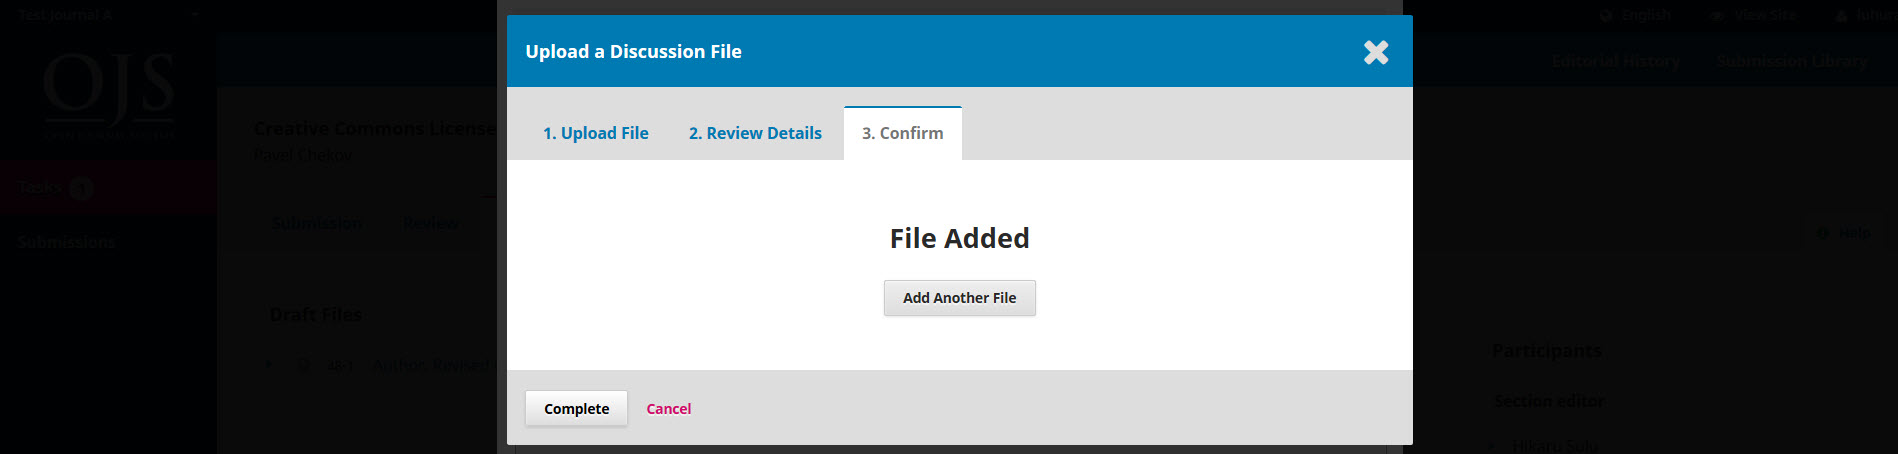 ojs3-copyeditor-upload-file-confirm